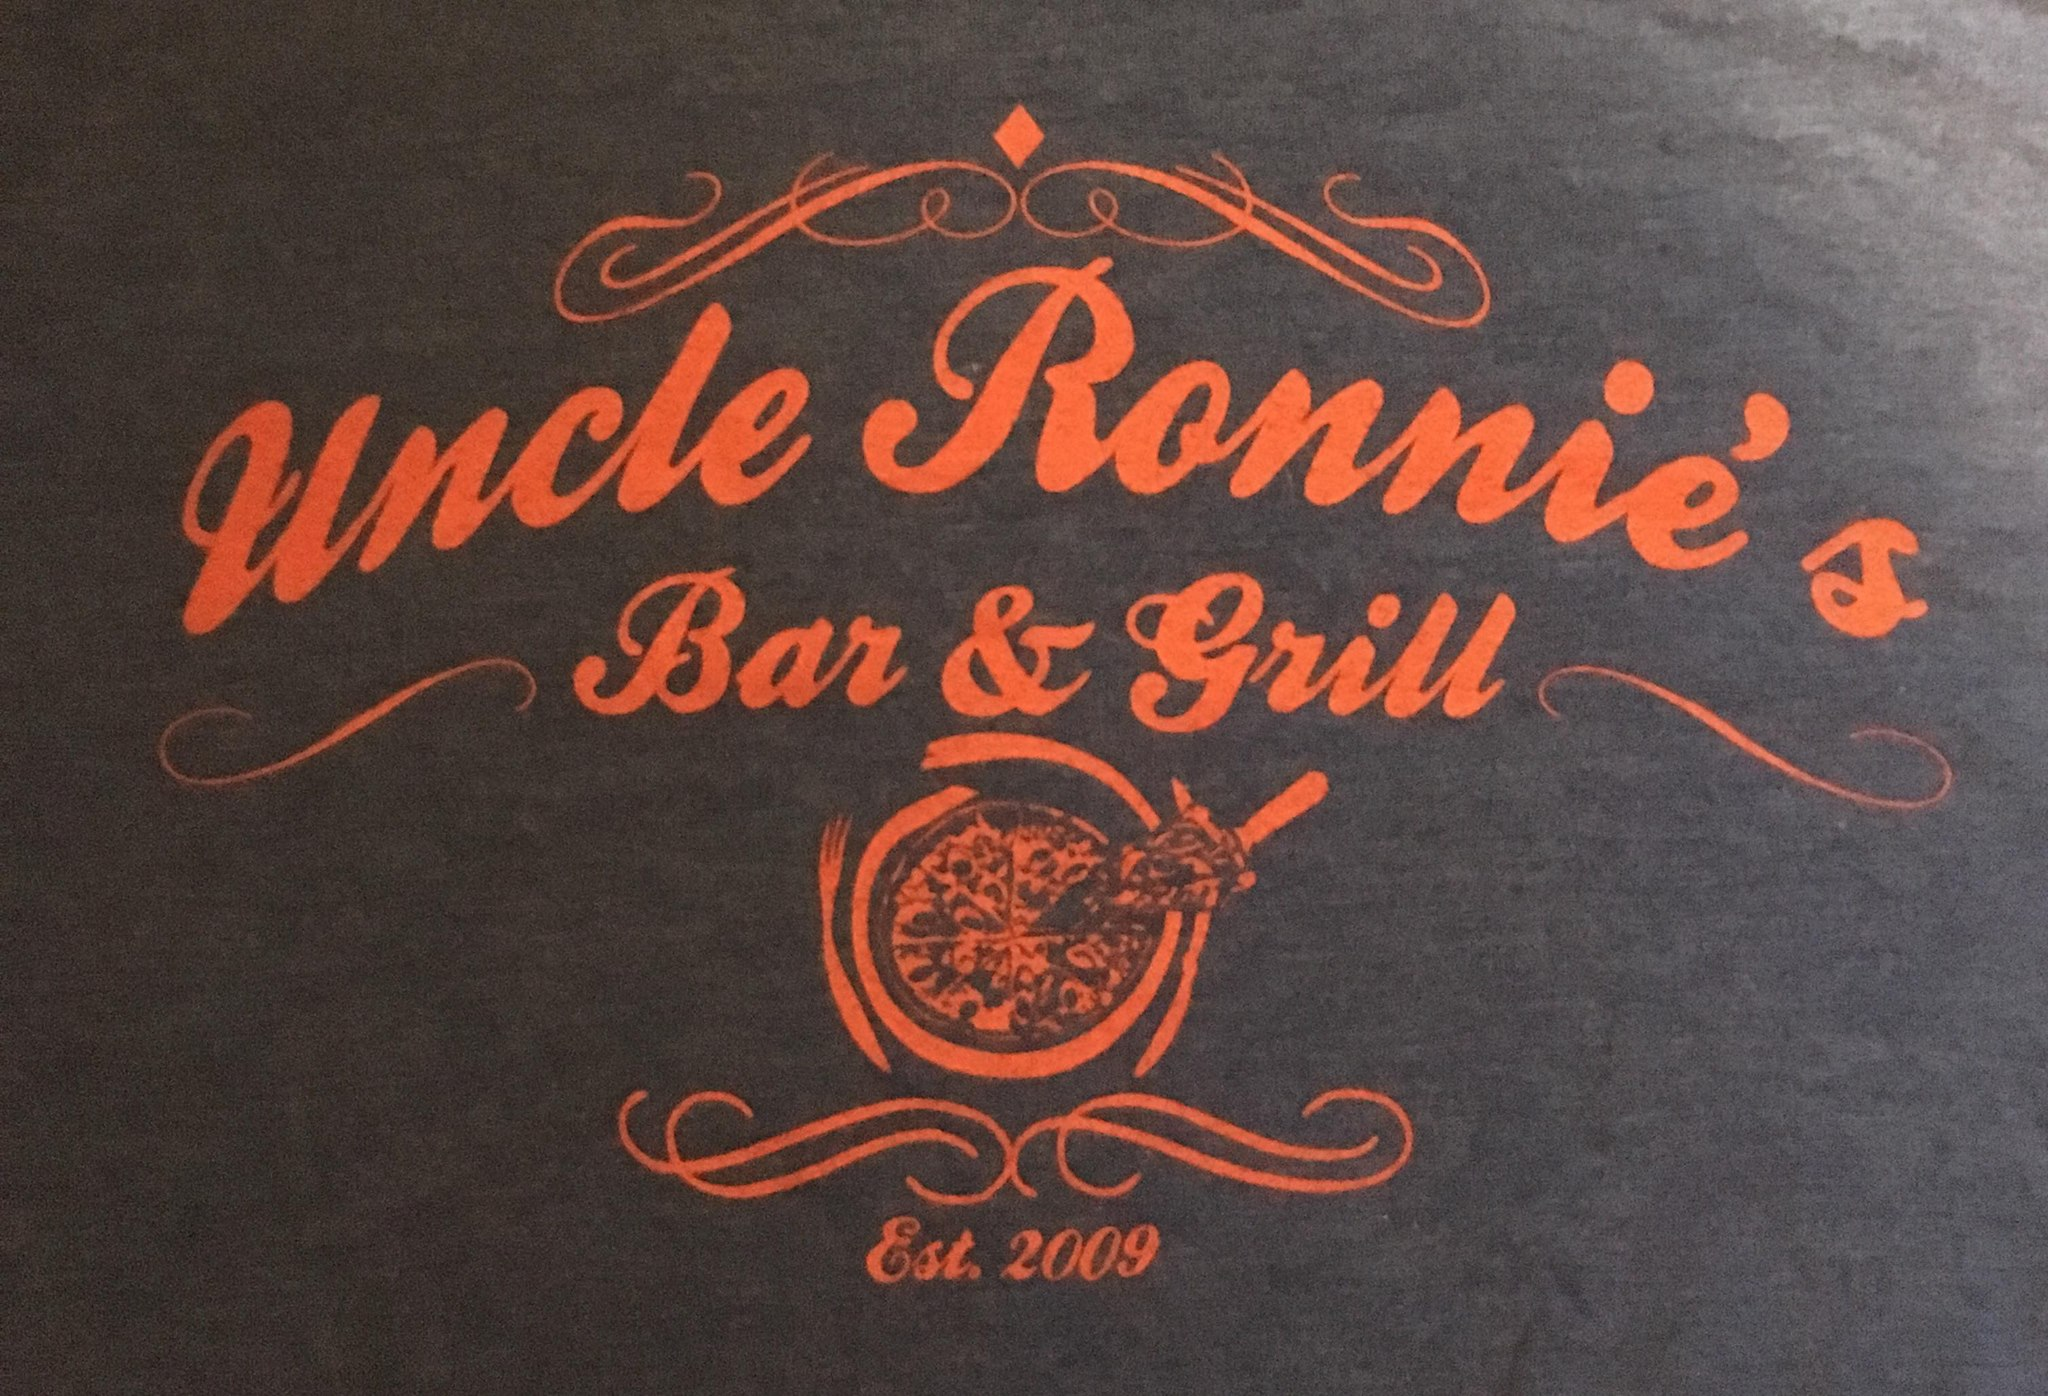 So Many Choices at Uncle Ronnie's Bar & Grill! G.B.R.W